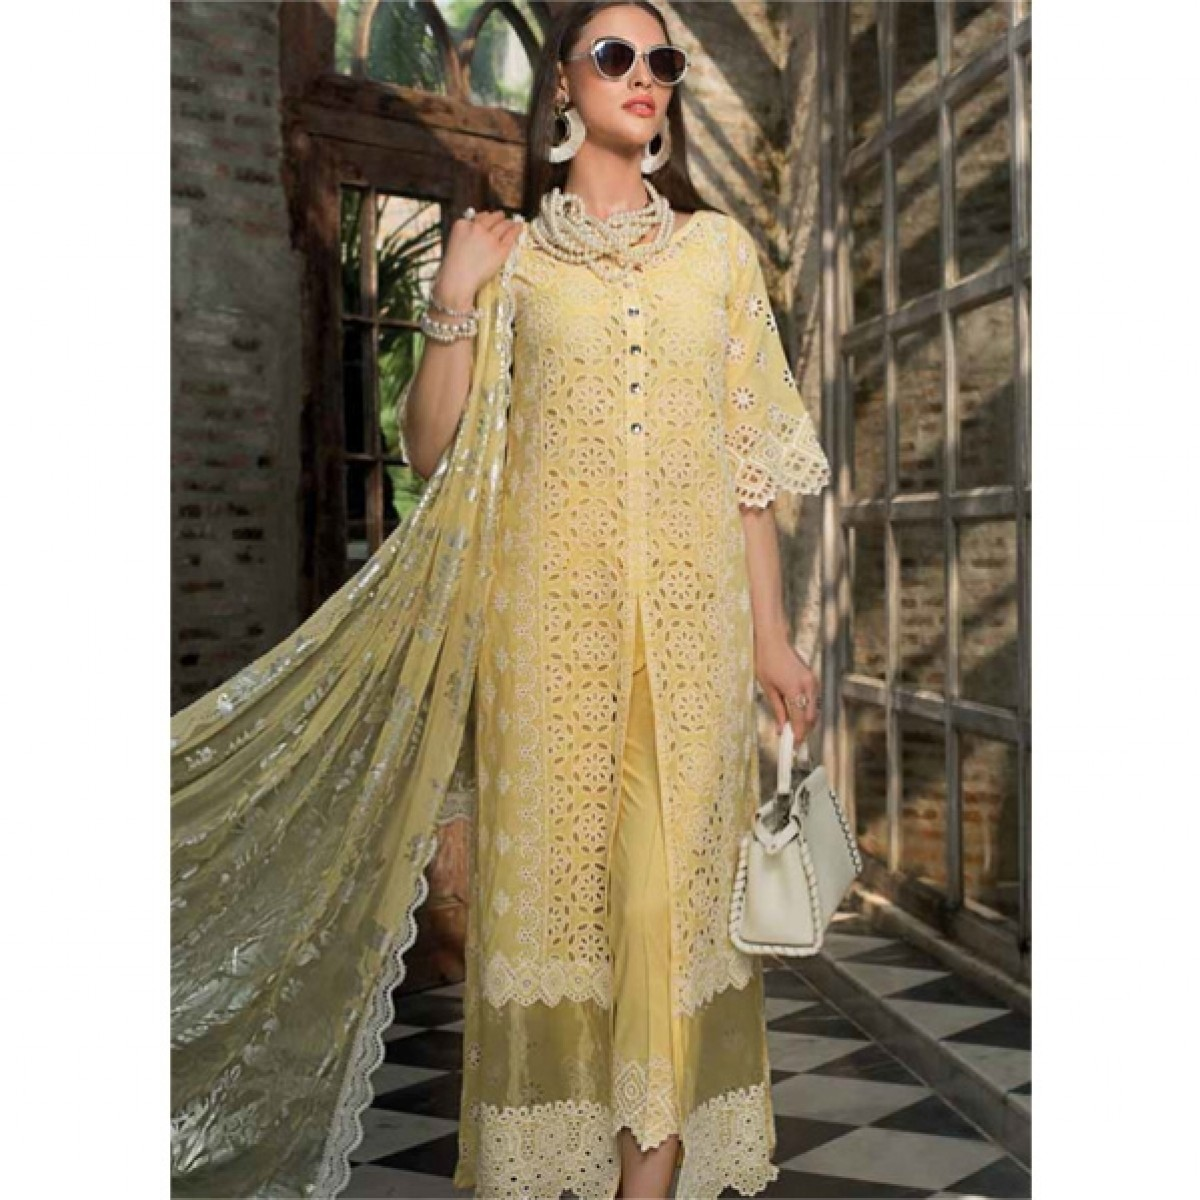 450691663e Zainab Chottani Chikankari Embroidered Collection 2019 3 Piece Price in  Pakistan | Buy Zainab Embroidered Collection (06A) | iShopping.pk